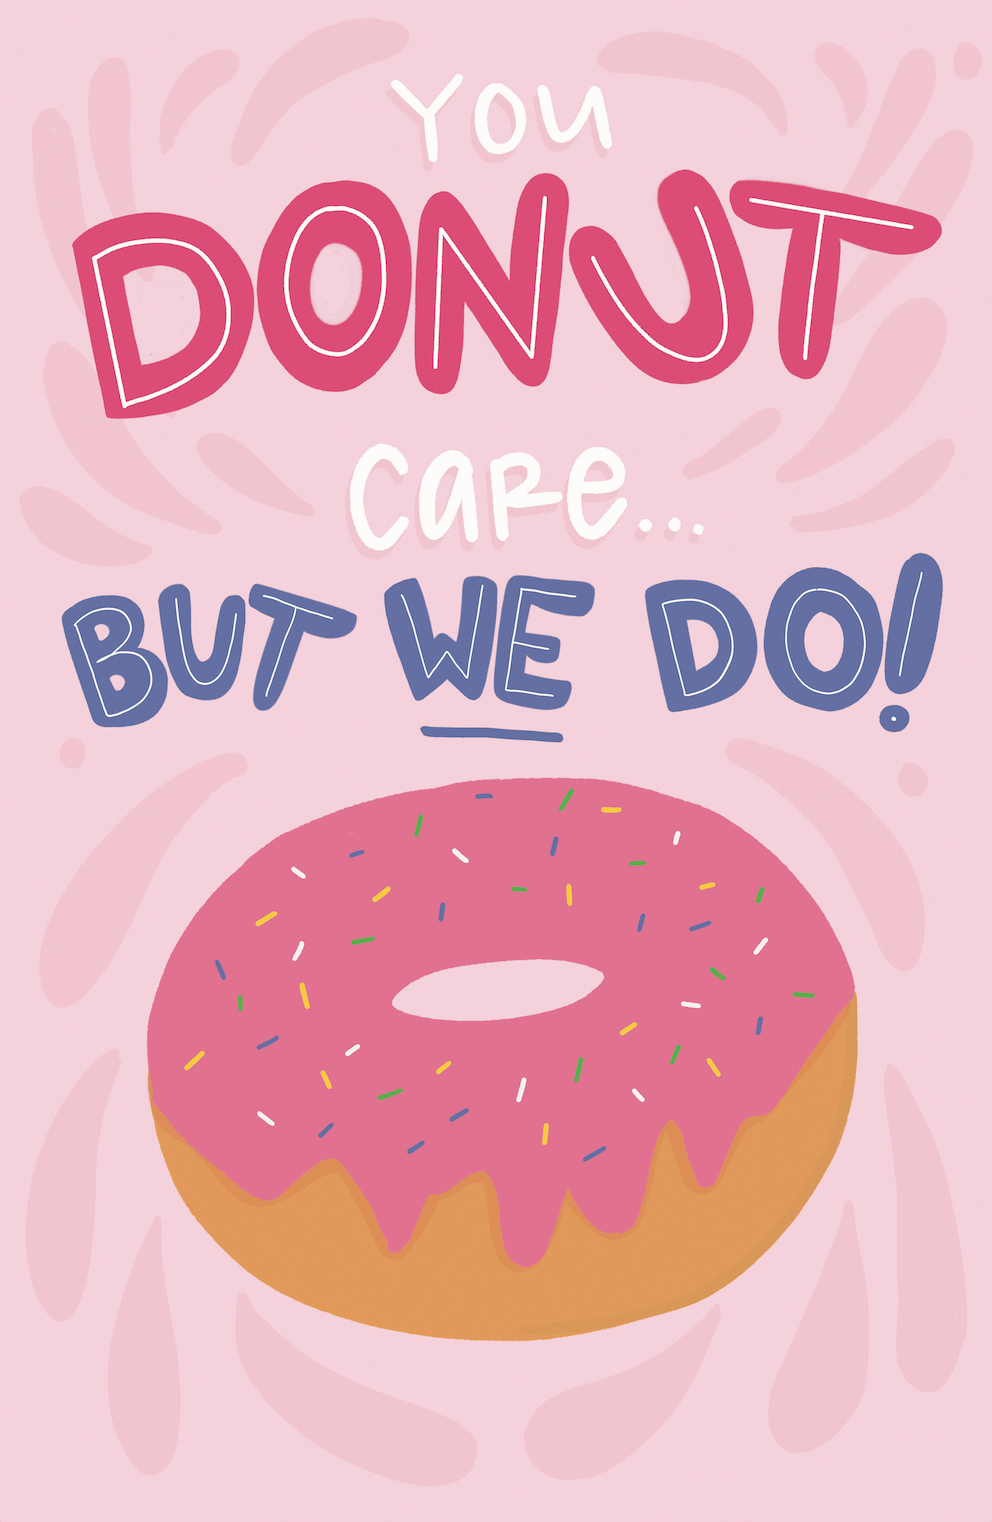 Protest poster design (also part of my #100daysoftastytreats series), 2018